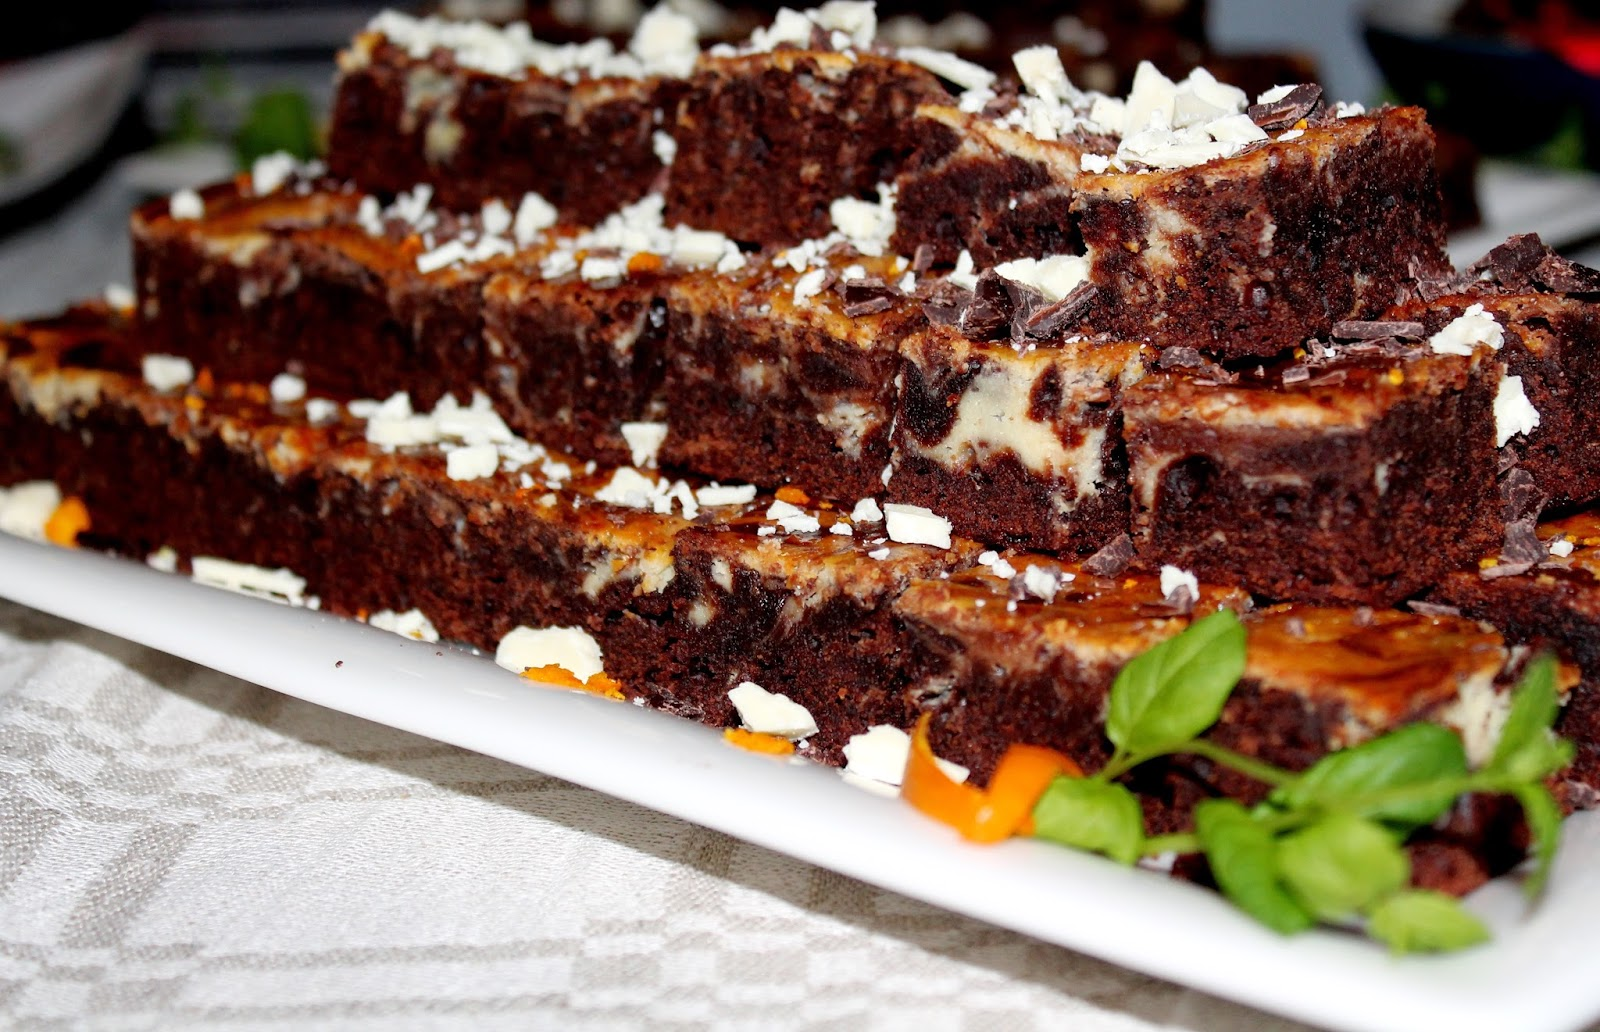 foor presentation in dessert table: chocolaty marbled brownies